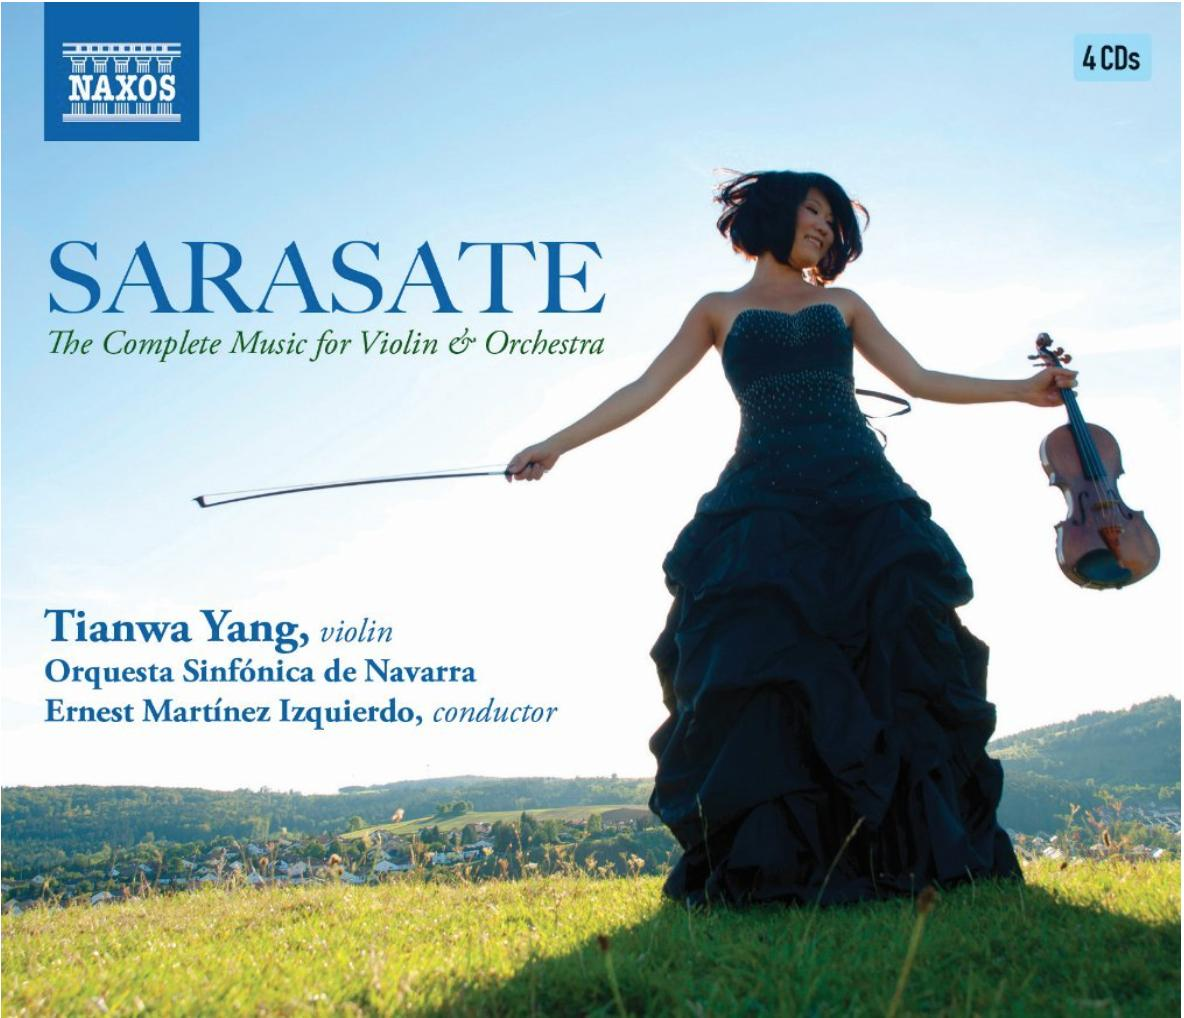 Sarasate complete violin music